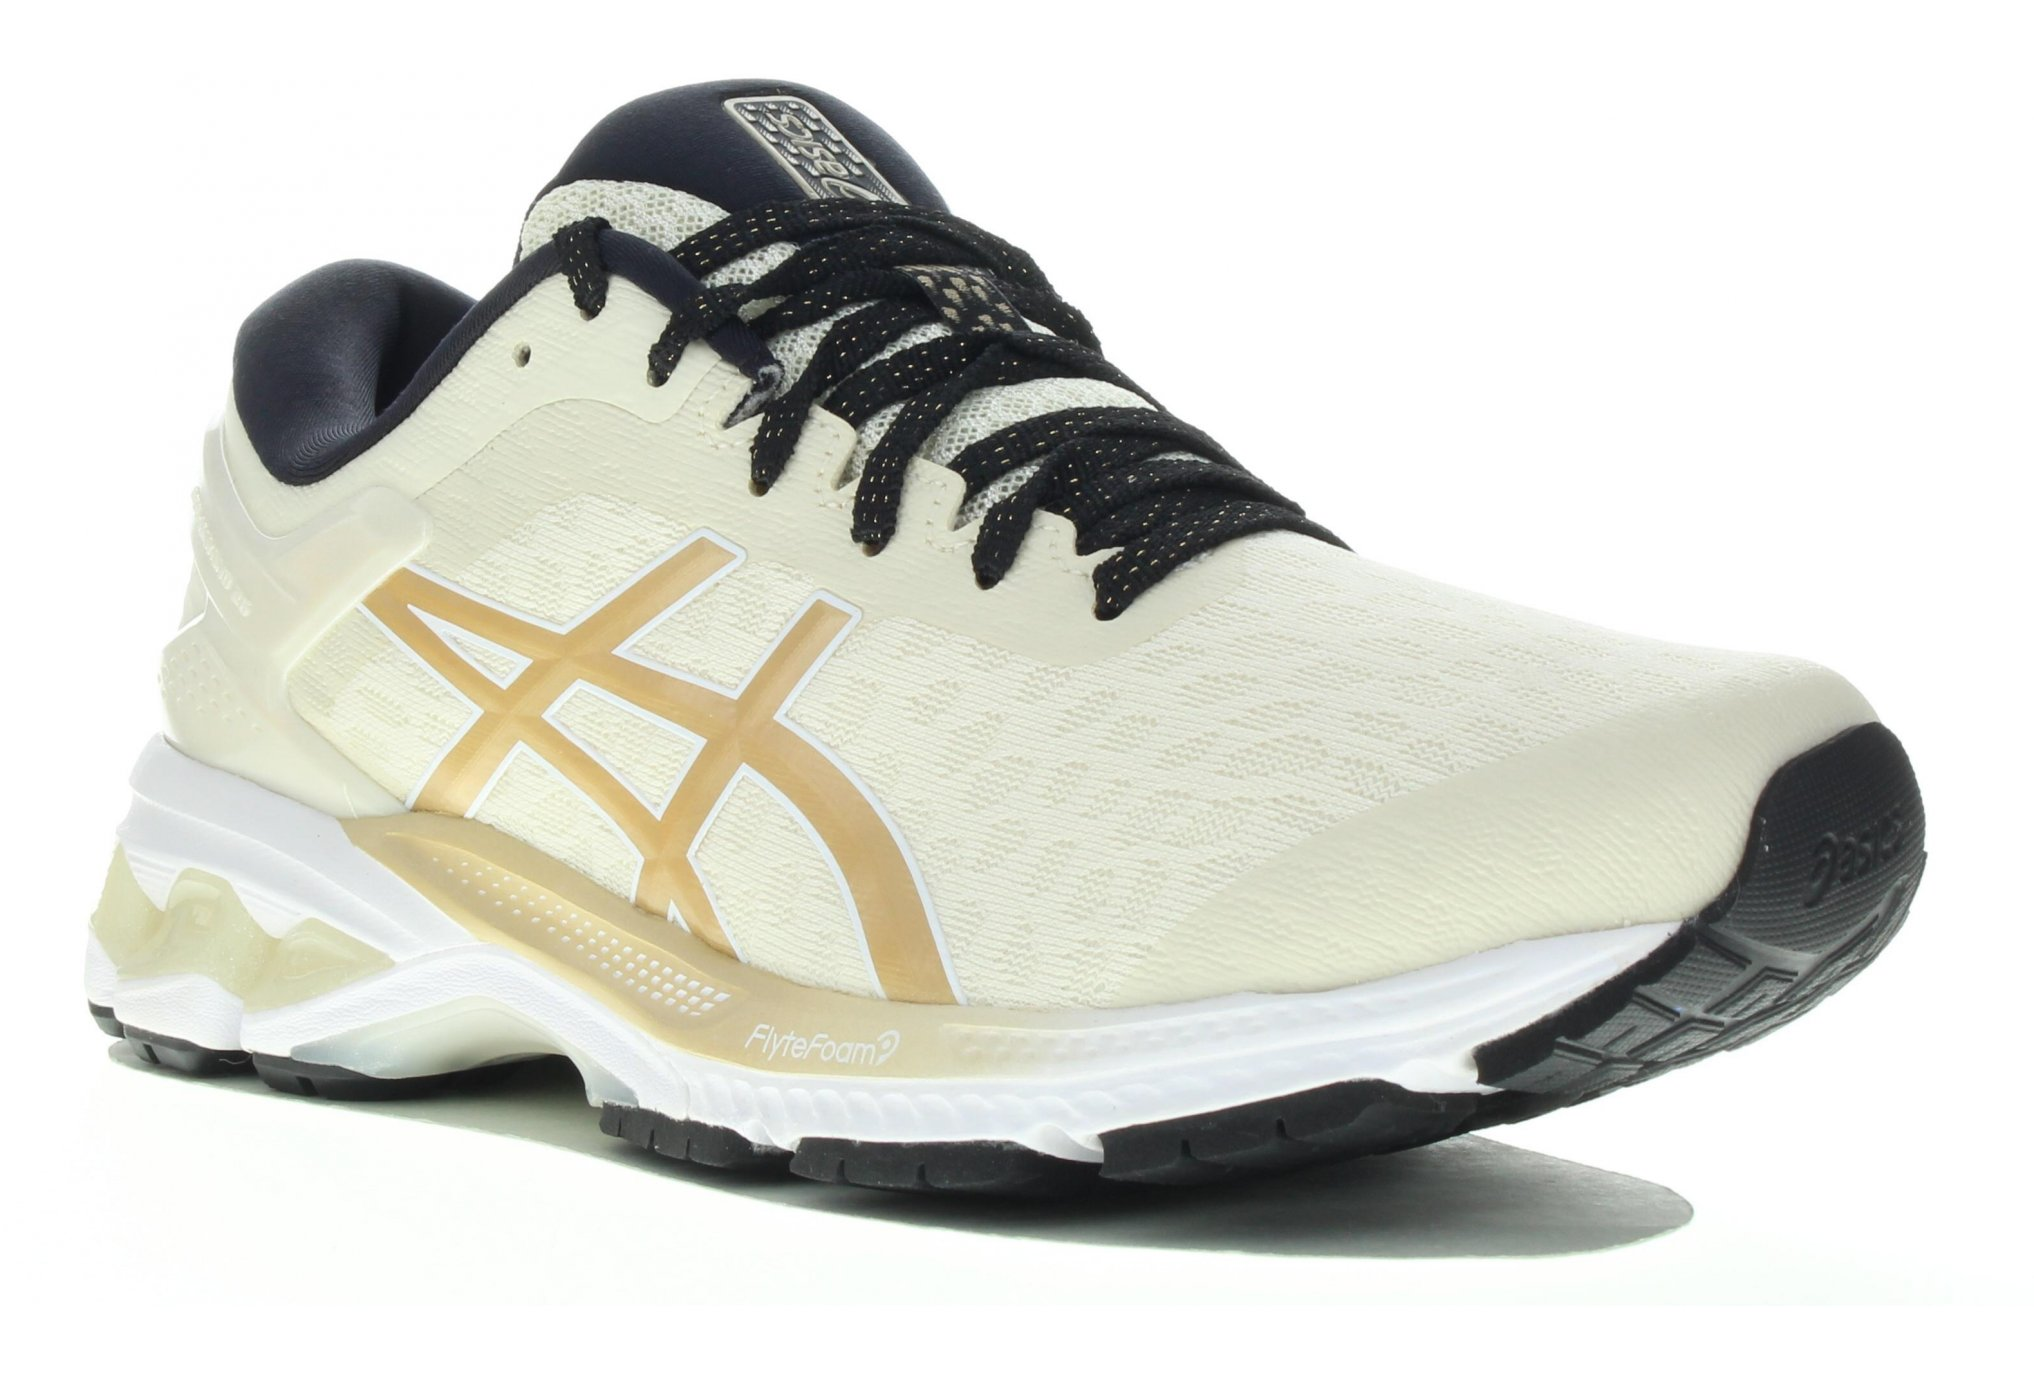 Asics Gel Kayano 26 The New Strong Chaussures running femme